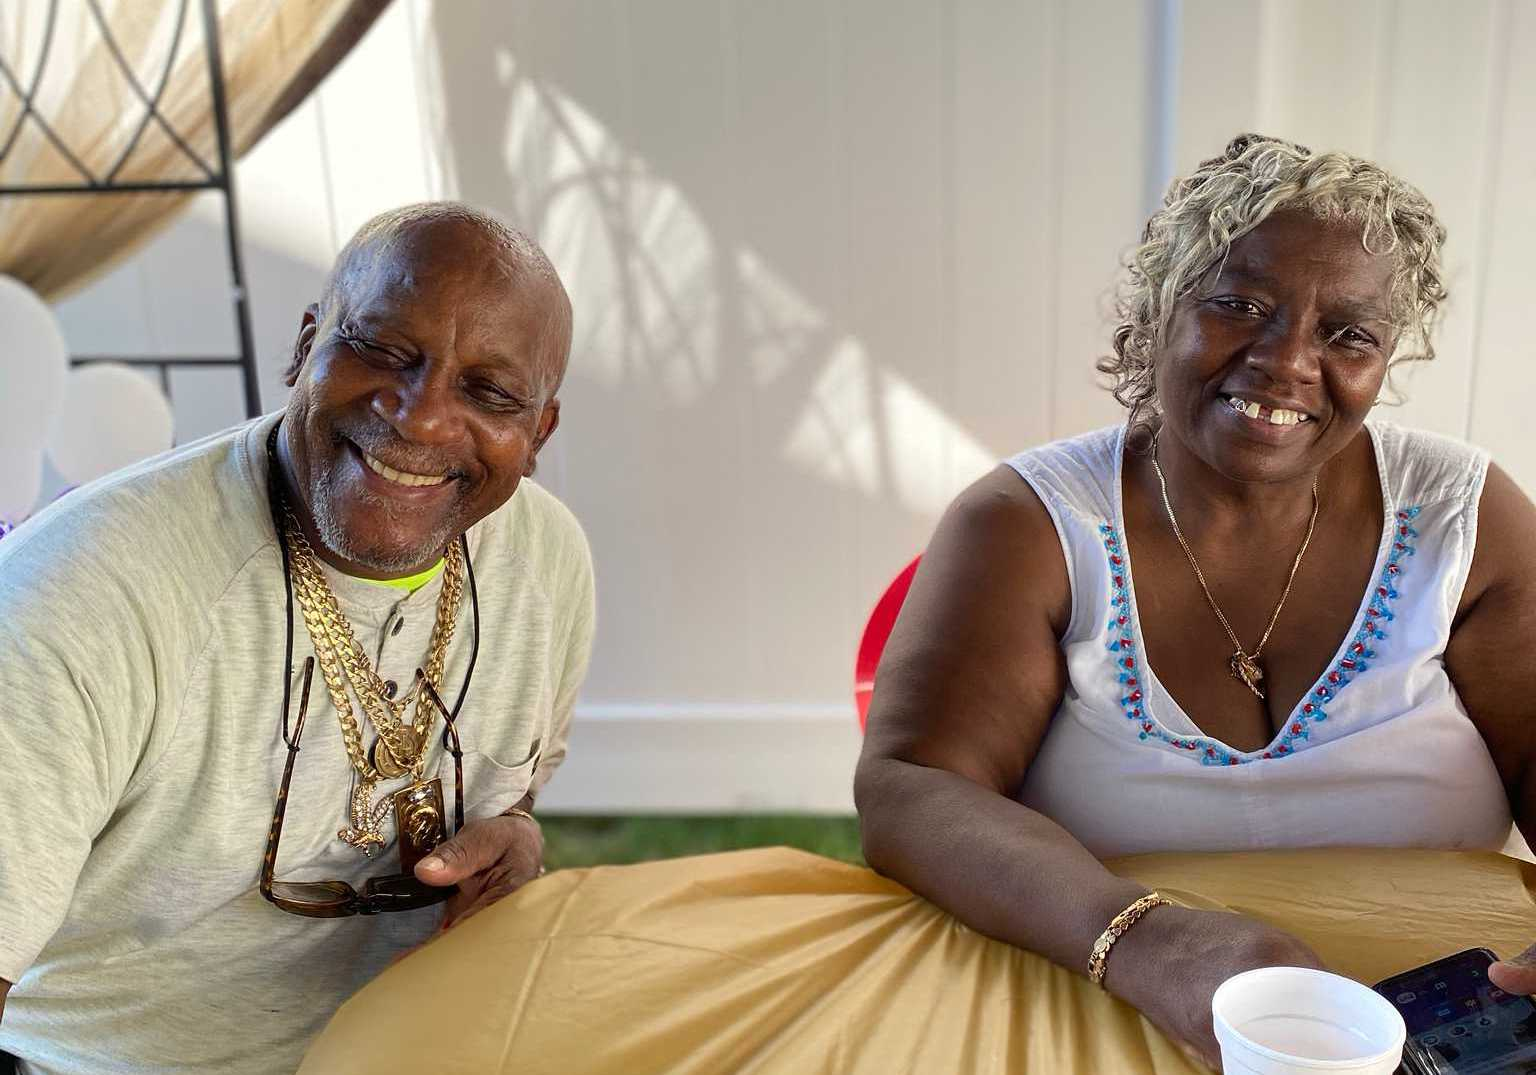 Nicholas' grandparents relaxing together. Photo courtesy of Jhada Nicholas.